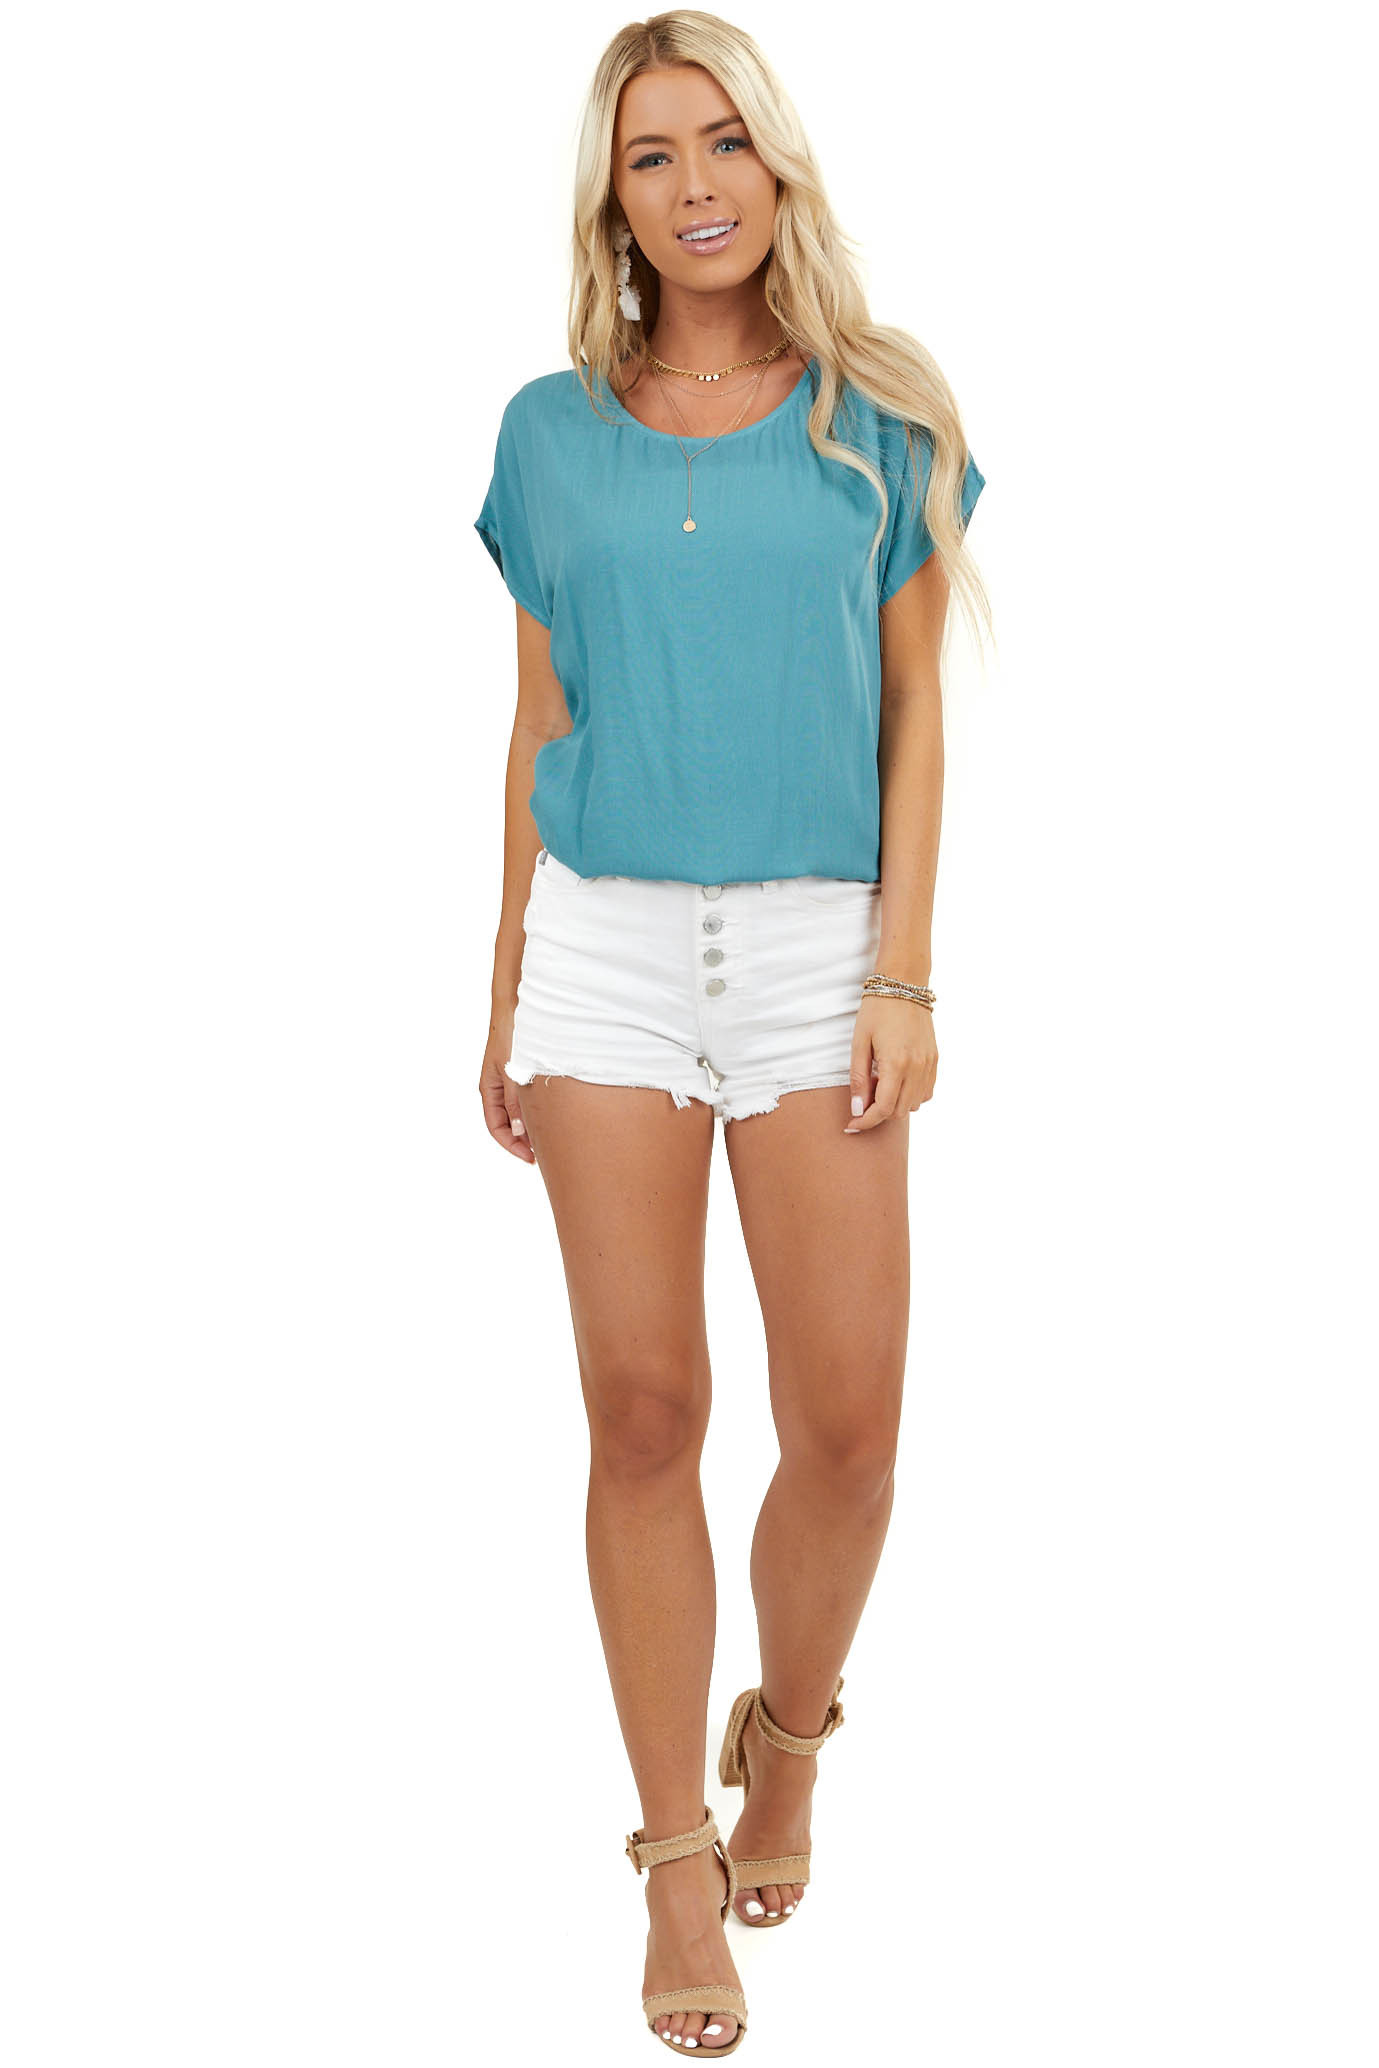 Pine Green Short Sleeve Woven Top with Button Up Back